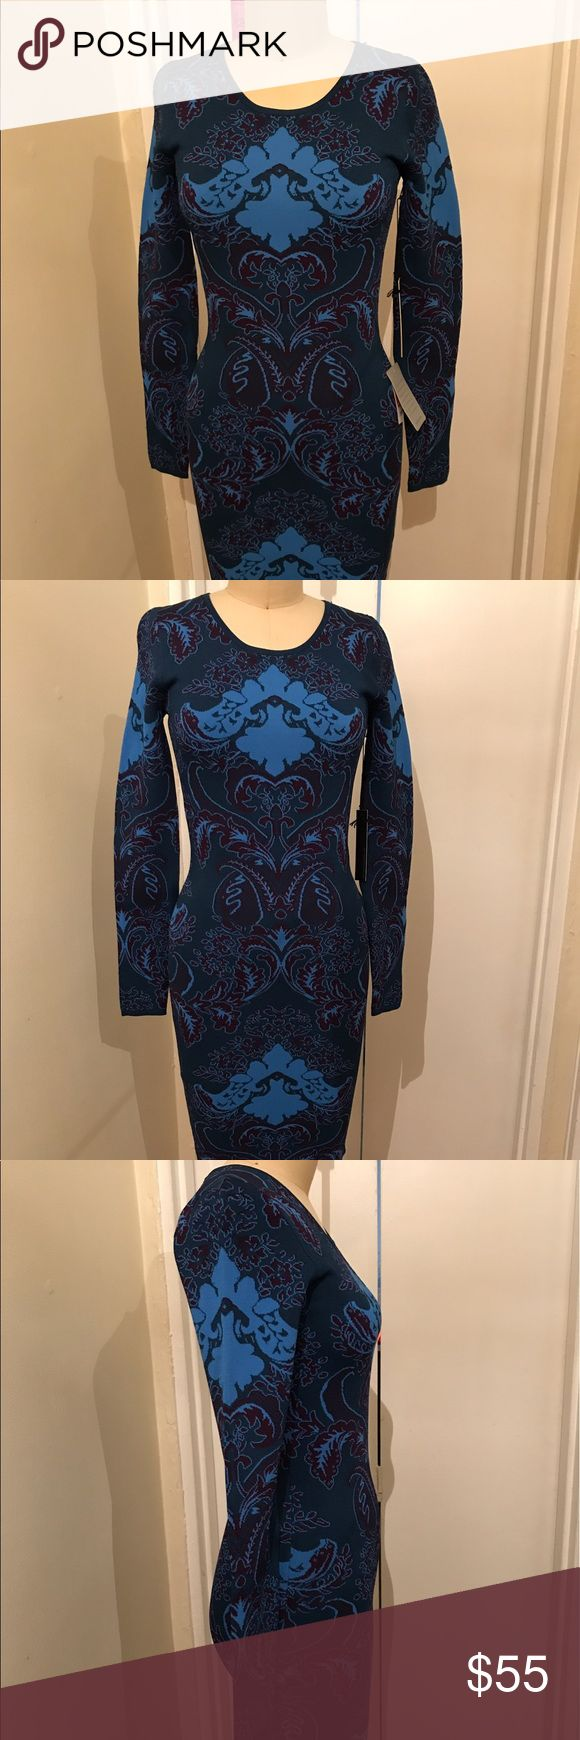 New - Blue Jacquard Pattern Bodycon Dress New - Blue Jacquard Pattern Bodycon Dress Sold by Nordstrom. Fabric has tones of Blue, Light Blue. The mannequin is a size 2 for reference Nordstrom Dresses